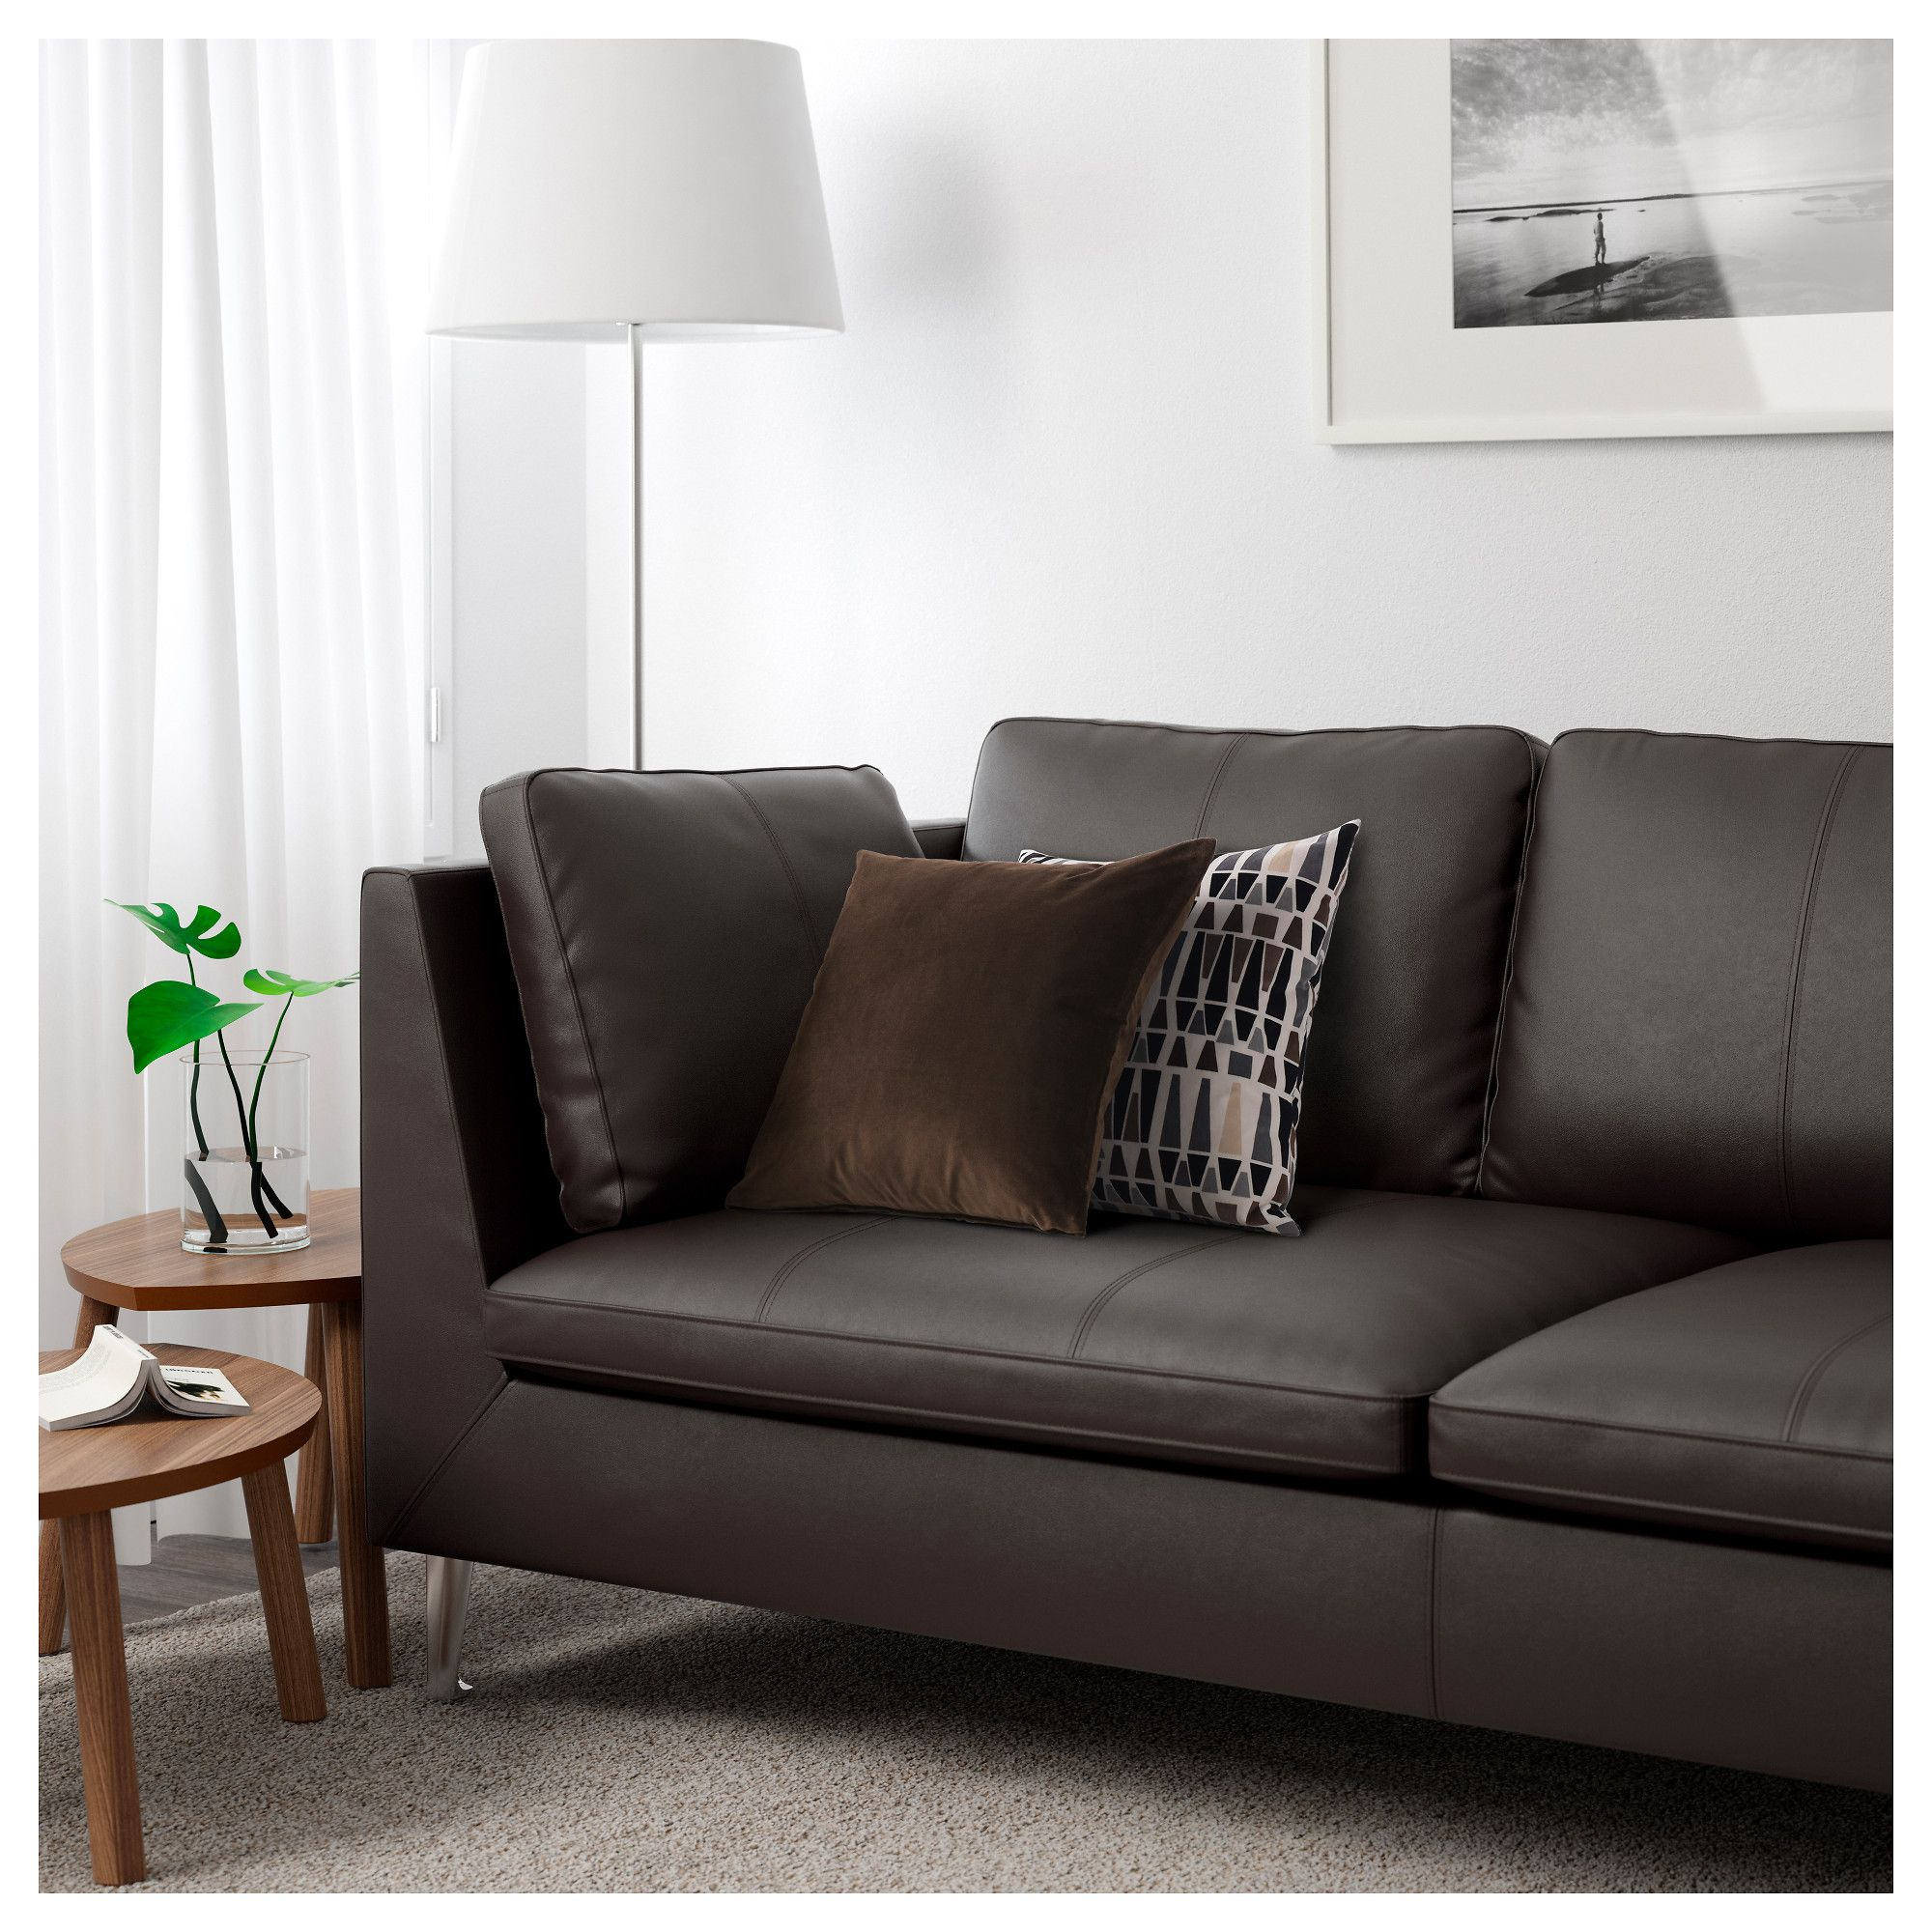 Awesome IKEA   STOCKHOLM Sofa Seglora Dark Brown